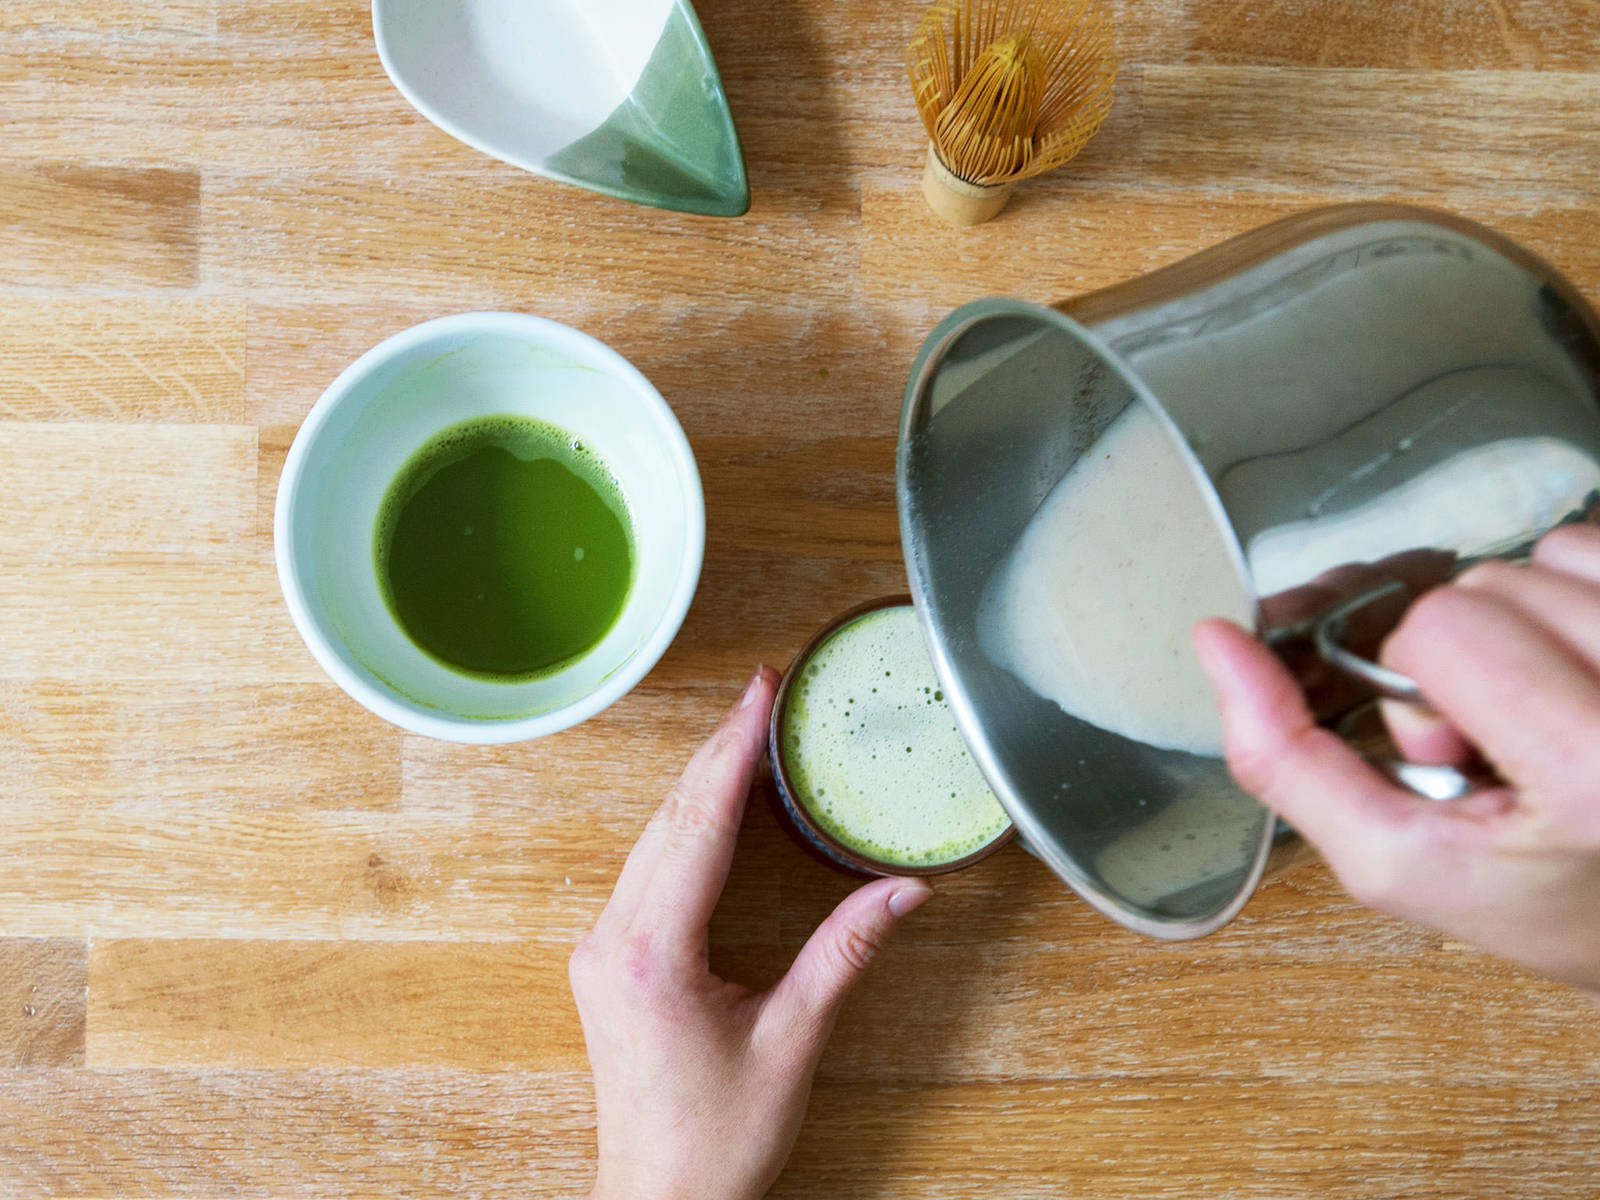 Add matcha mixture to drink, blend again, and serve in cups.